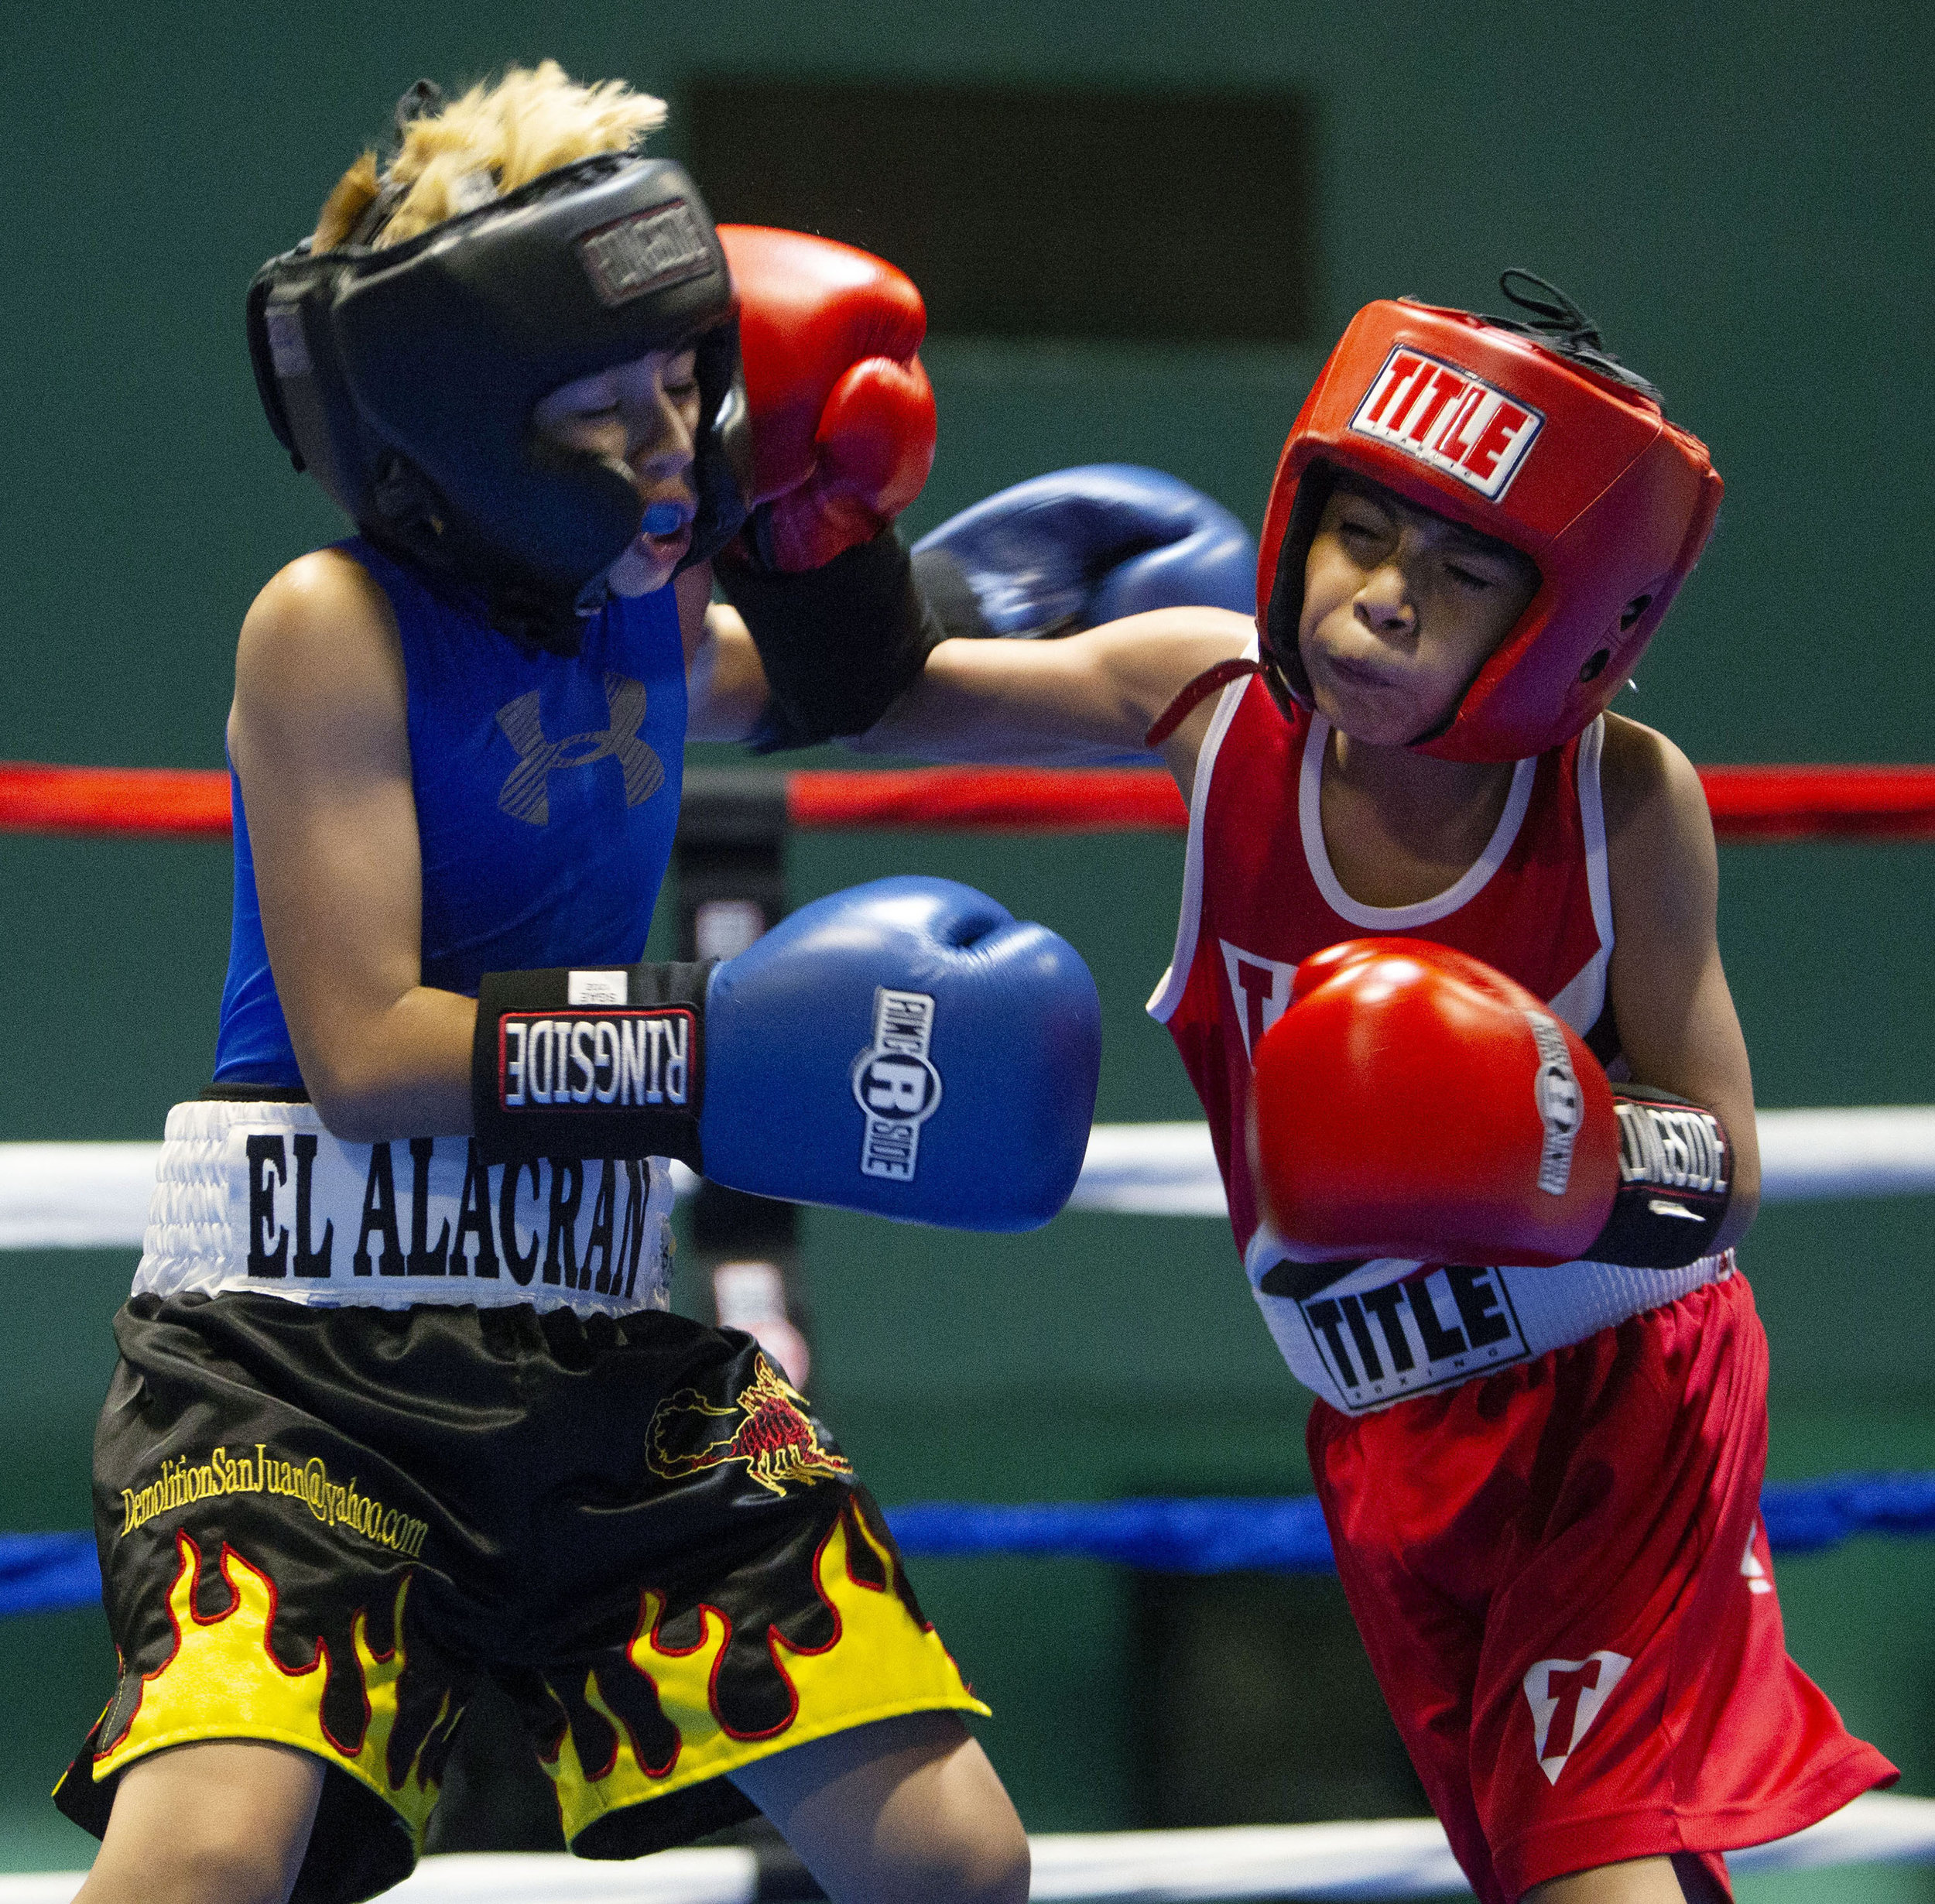 FTP Boxing's Adrian Herrera, 9, lands a punch to the face of Compton Boxing's Alan Brizuela, 8, in their bout during the Future Olympics Champions at  Lake Perris Sports Pavilion in Perris on Saturday, August 18, 2018.